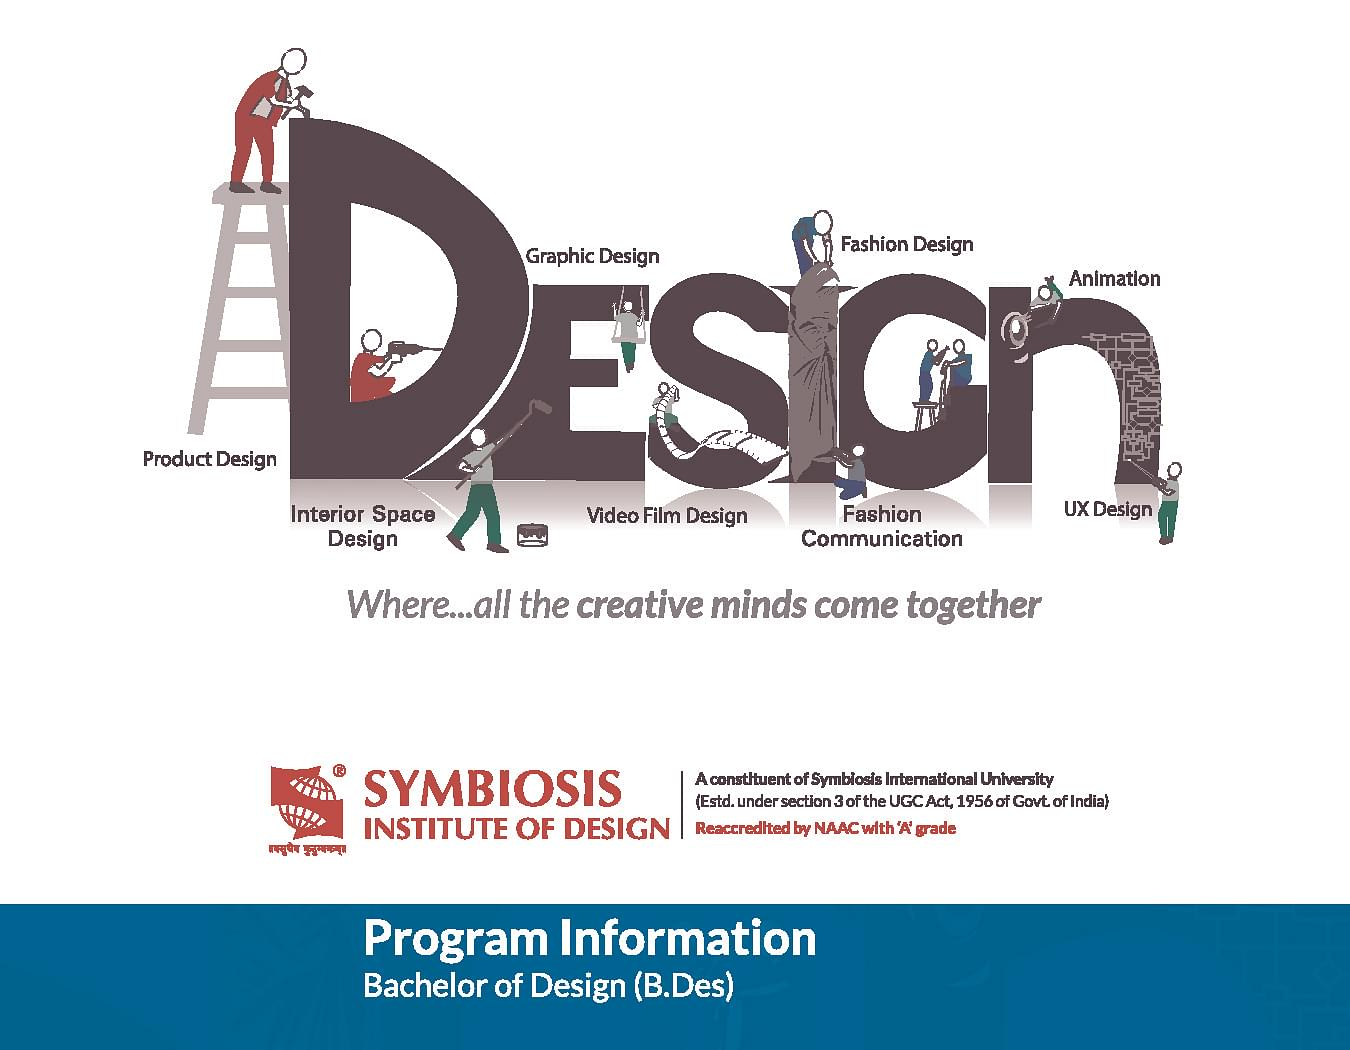 Symbiosis Institute of Design - [SID], Pune Information Brochure image 1